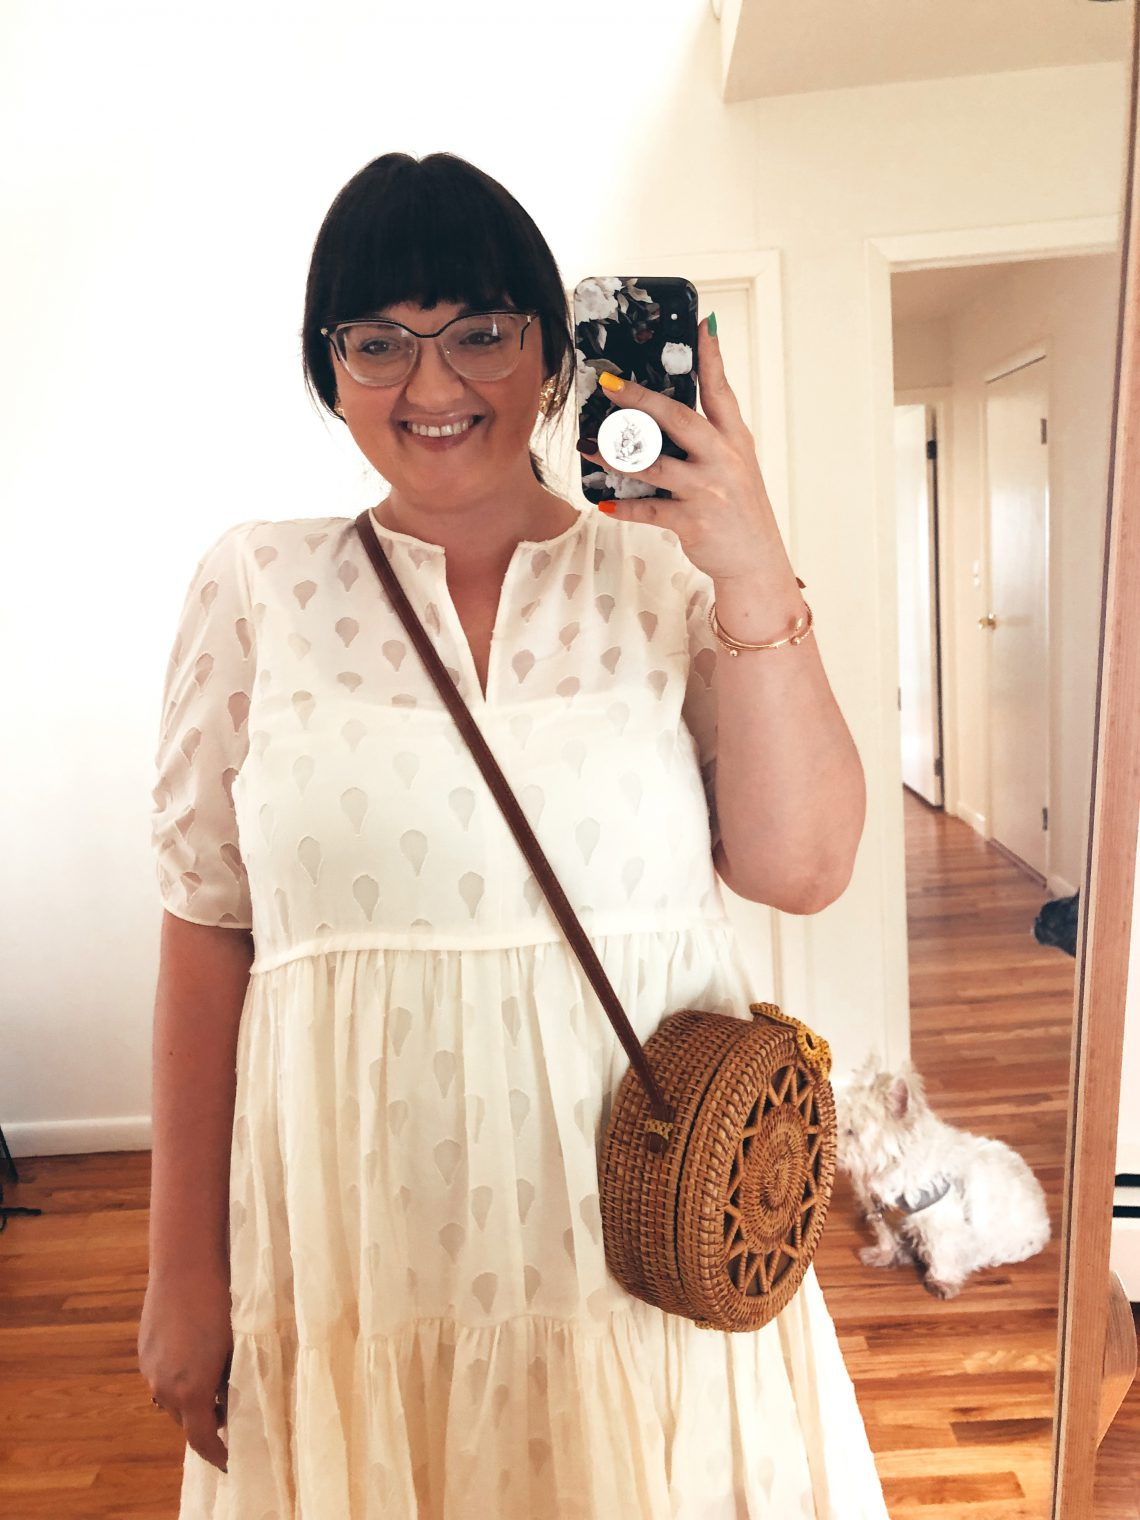 travel blogger, fashion blogger, food blogger, ootd, style, outfit, foodie, blogger, travel blog, fashion blog, food blog, bucket list, bucket list check, married life, married as fuck, mrs and mr judish, lynzi judish, dave brown, bucket list blog, NYC, body image, body positivity, lifestyle, plus size, ootd, outfit of the day, Shein, H&M, walking on clouds, puff-sleeve dress, leopard print heels, face earrings, gold face earrings, woven bag, straw bag